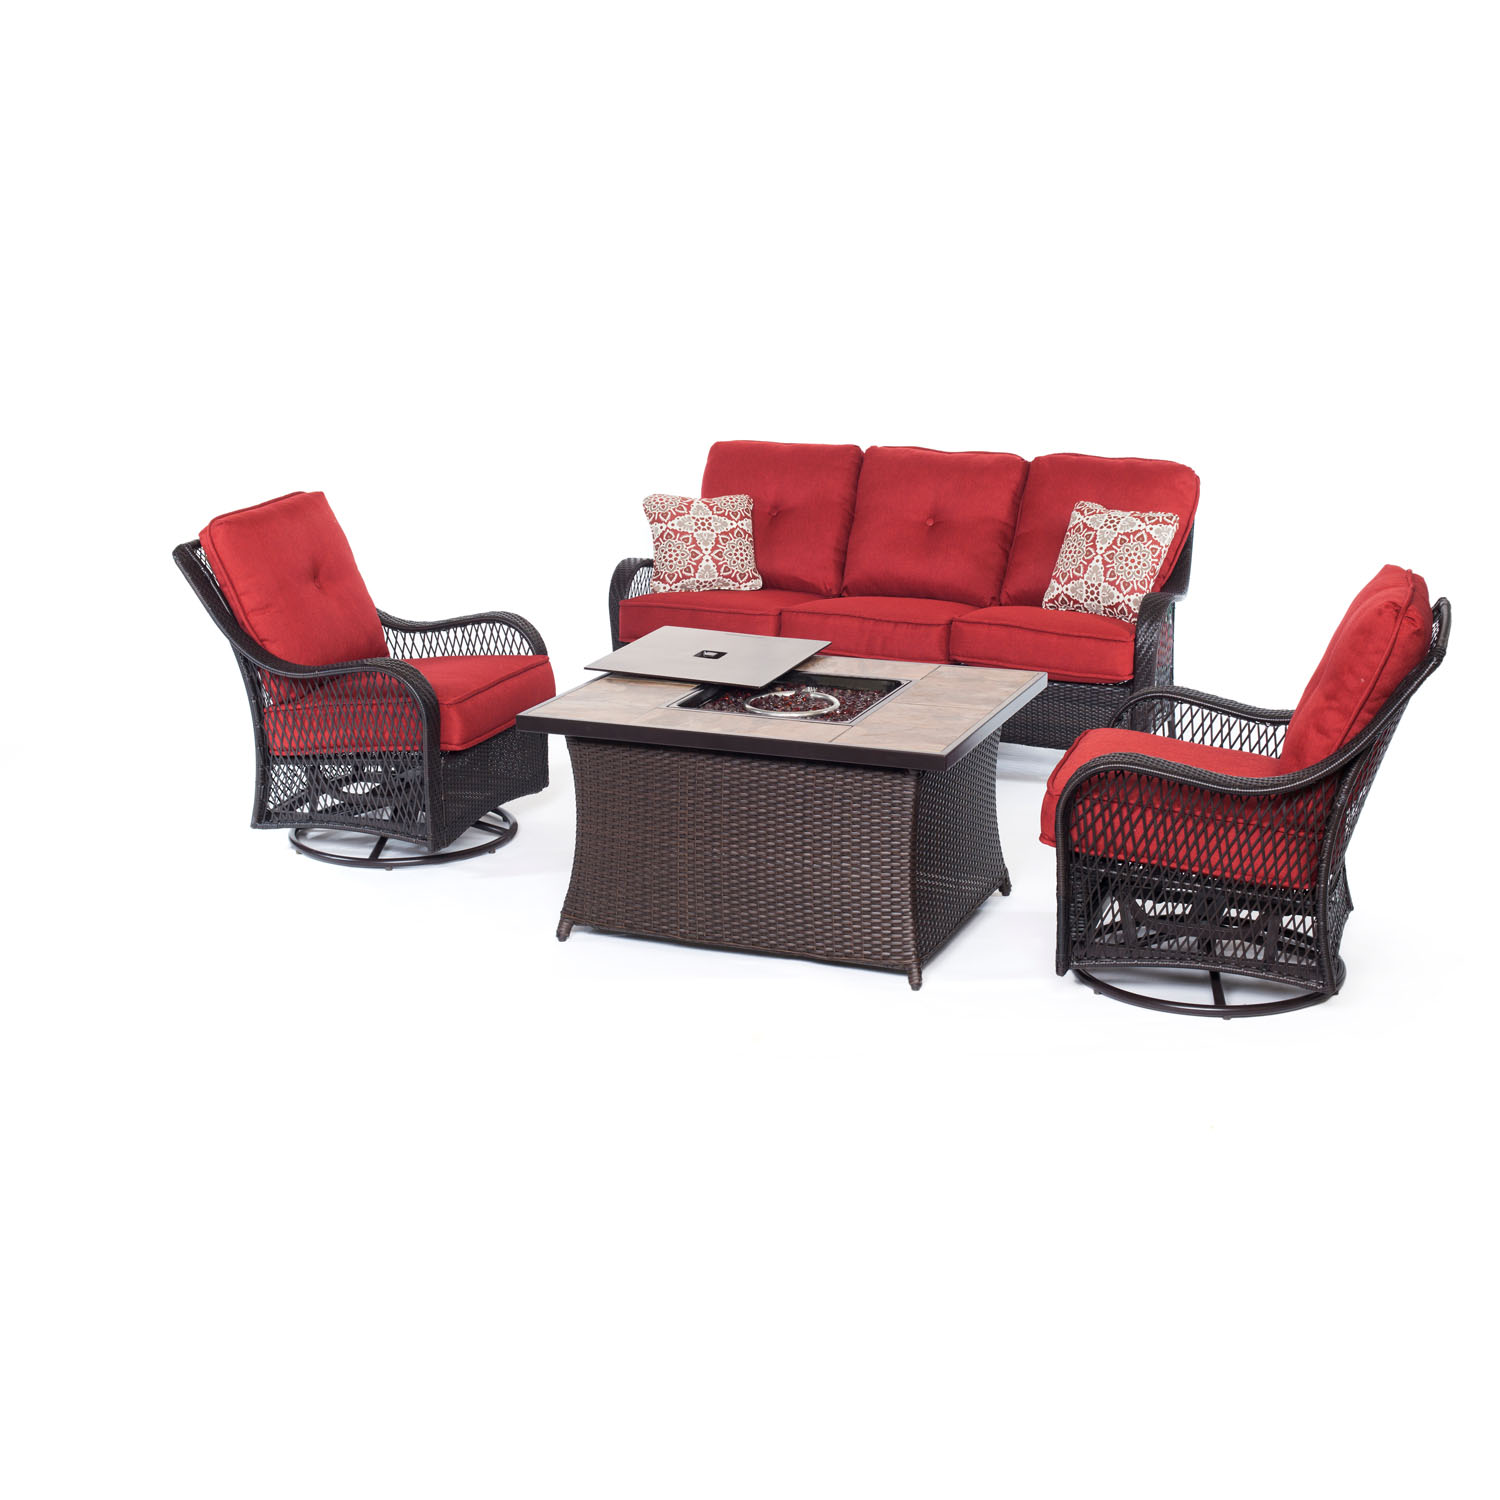 Hanover Orleans 4-Piece Woven Fire Pit Lounge Set with Faux-Stone Tile Top